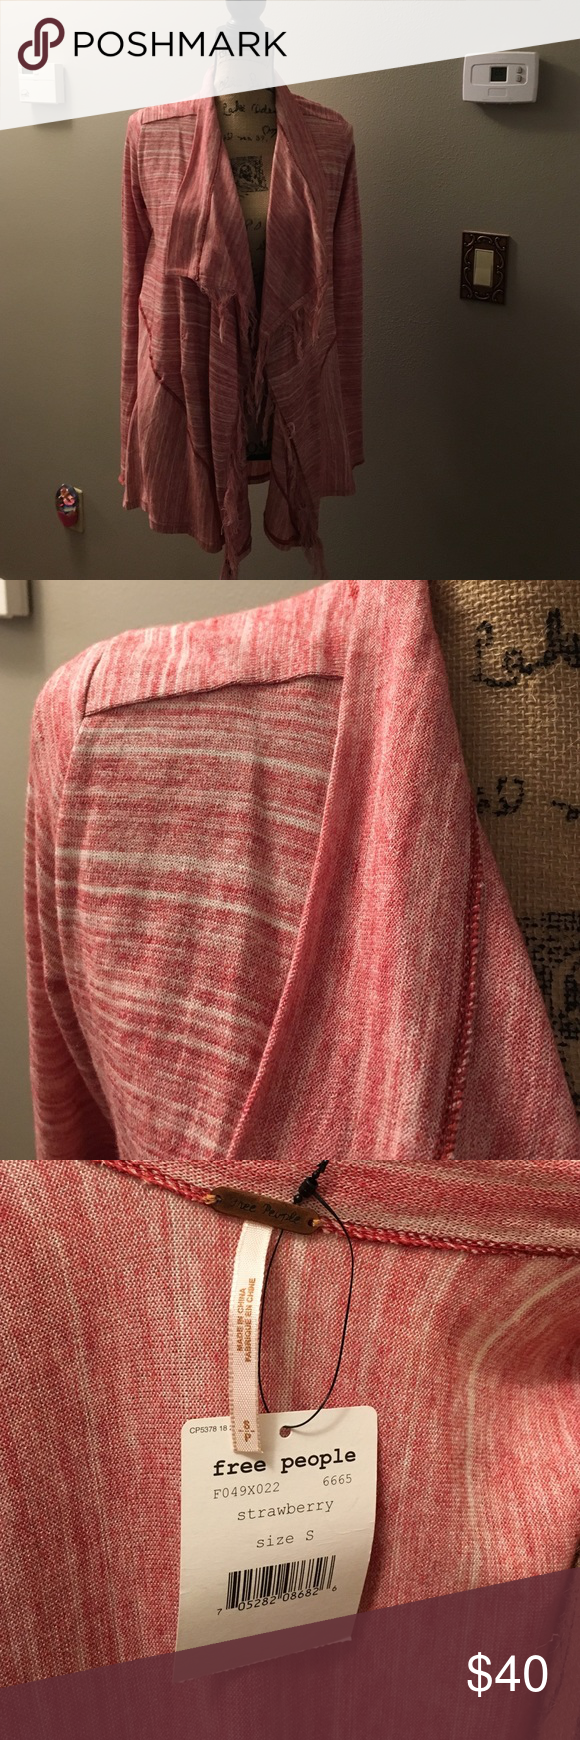 Free People NWT shawl NWT strawberry wrap/ shawl with sleeves size small Free People Jackets & Coats Capes